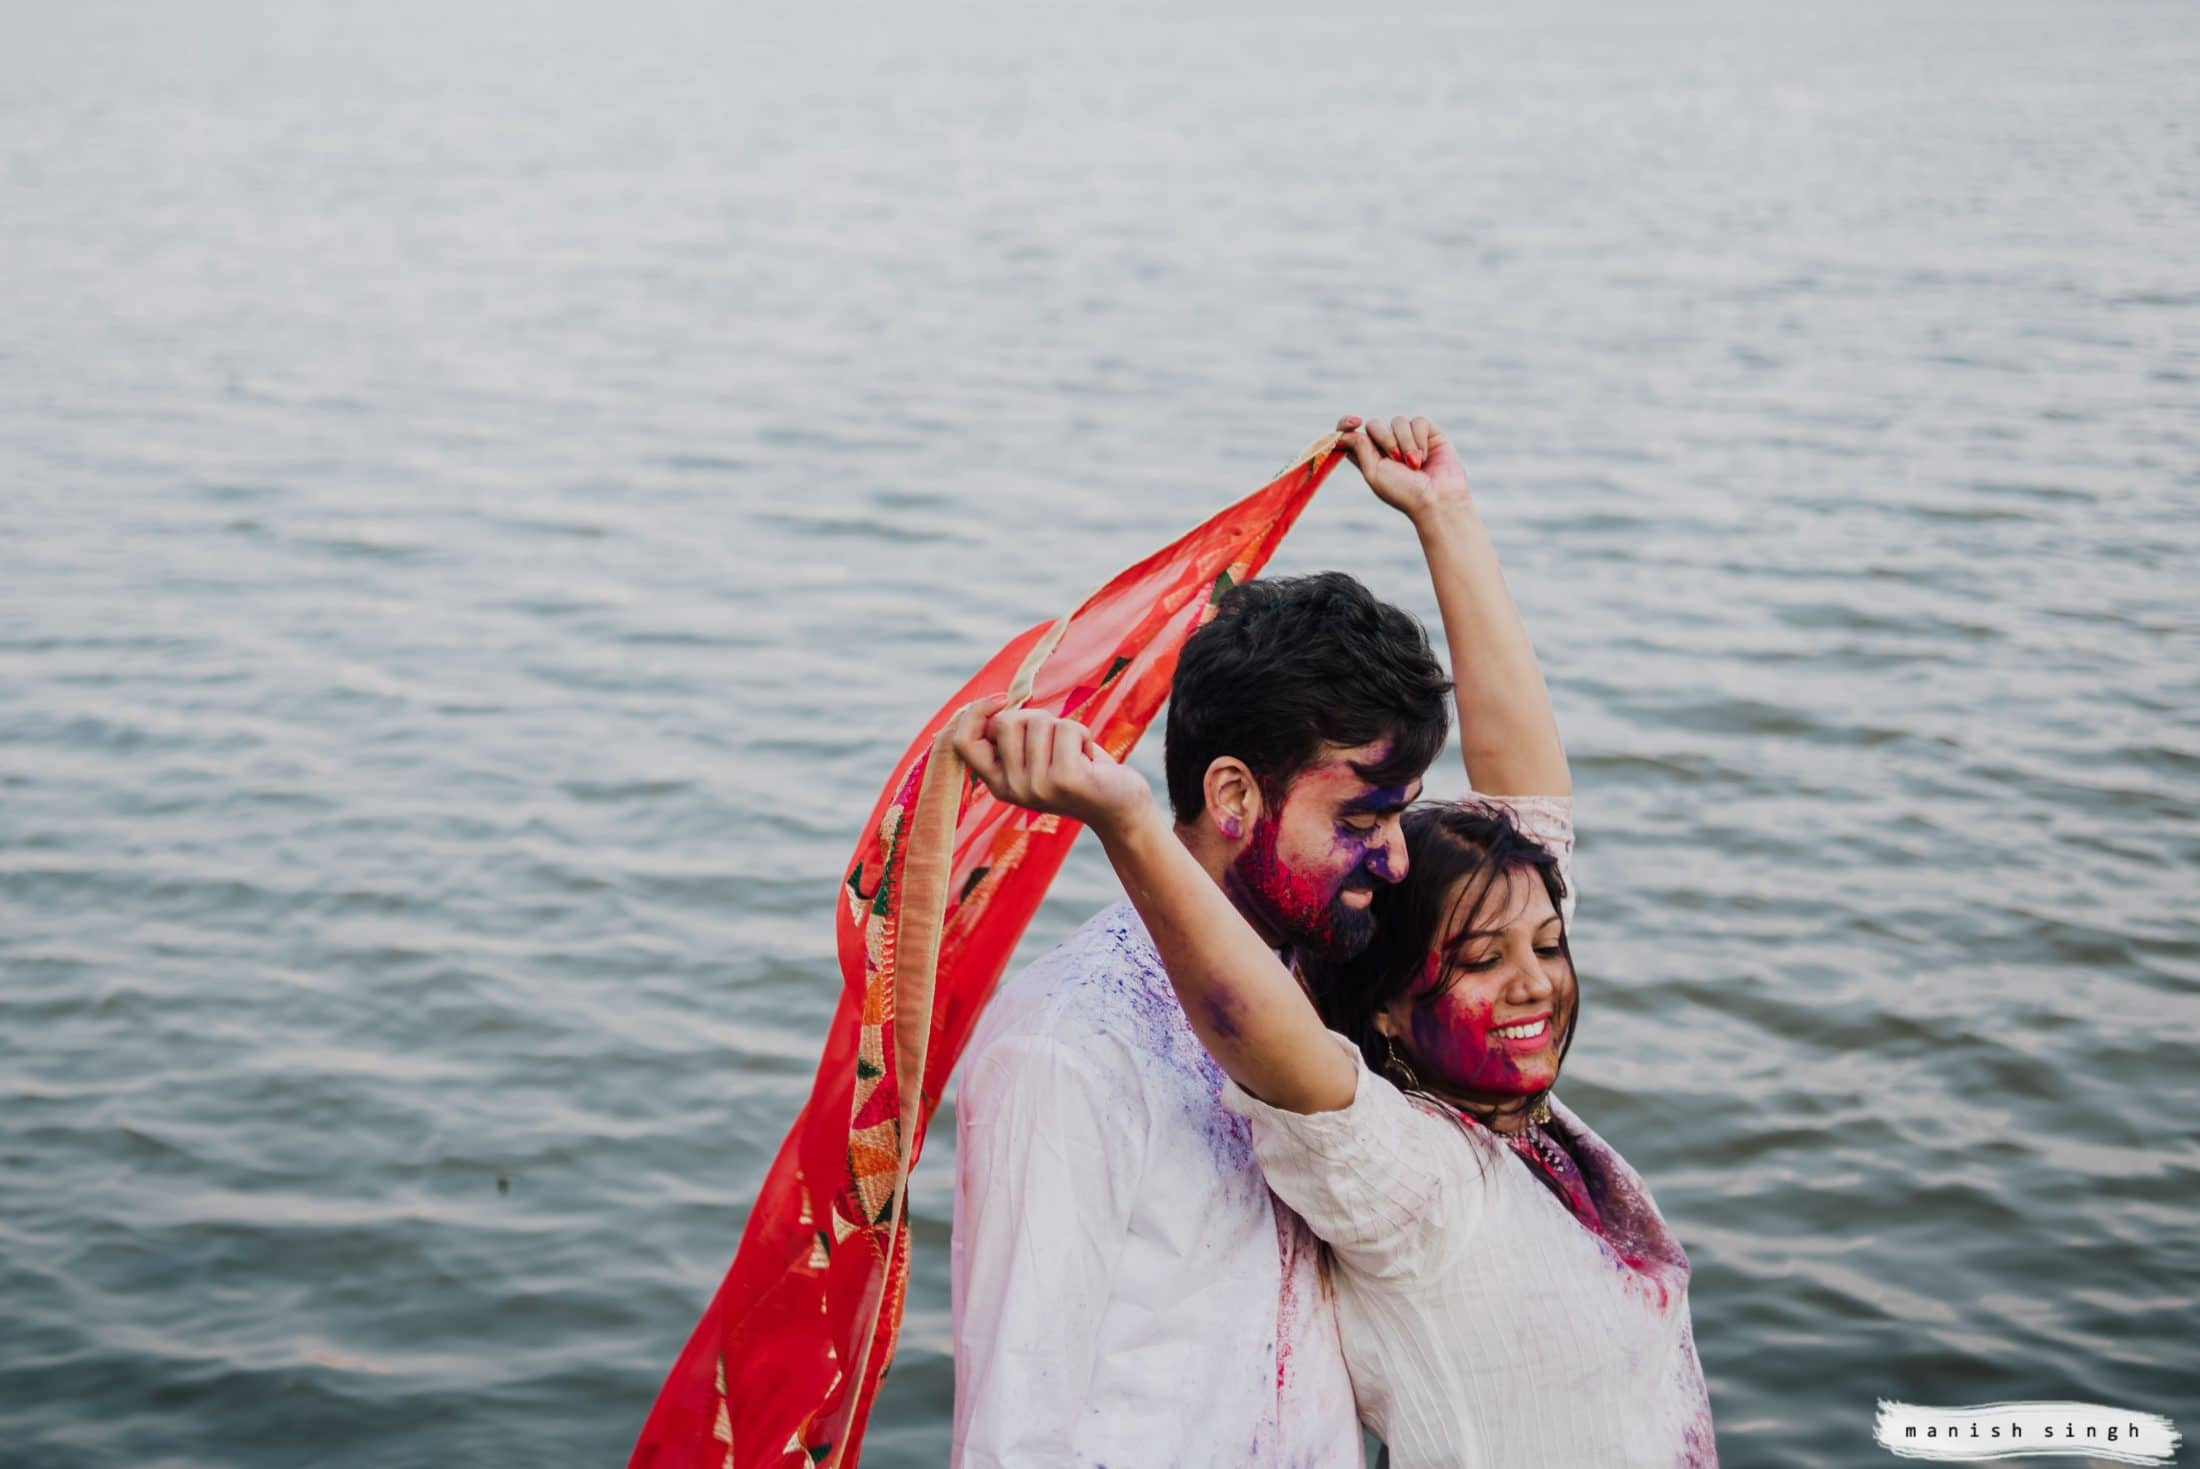 Pre wedding Photoshoot with holi colors Bangalore lake